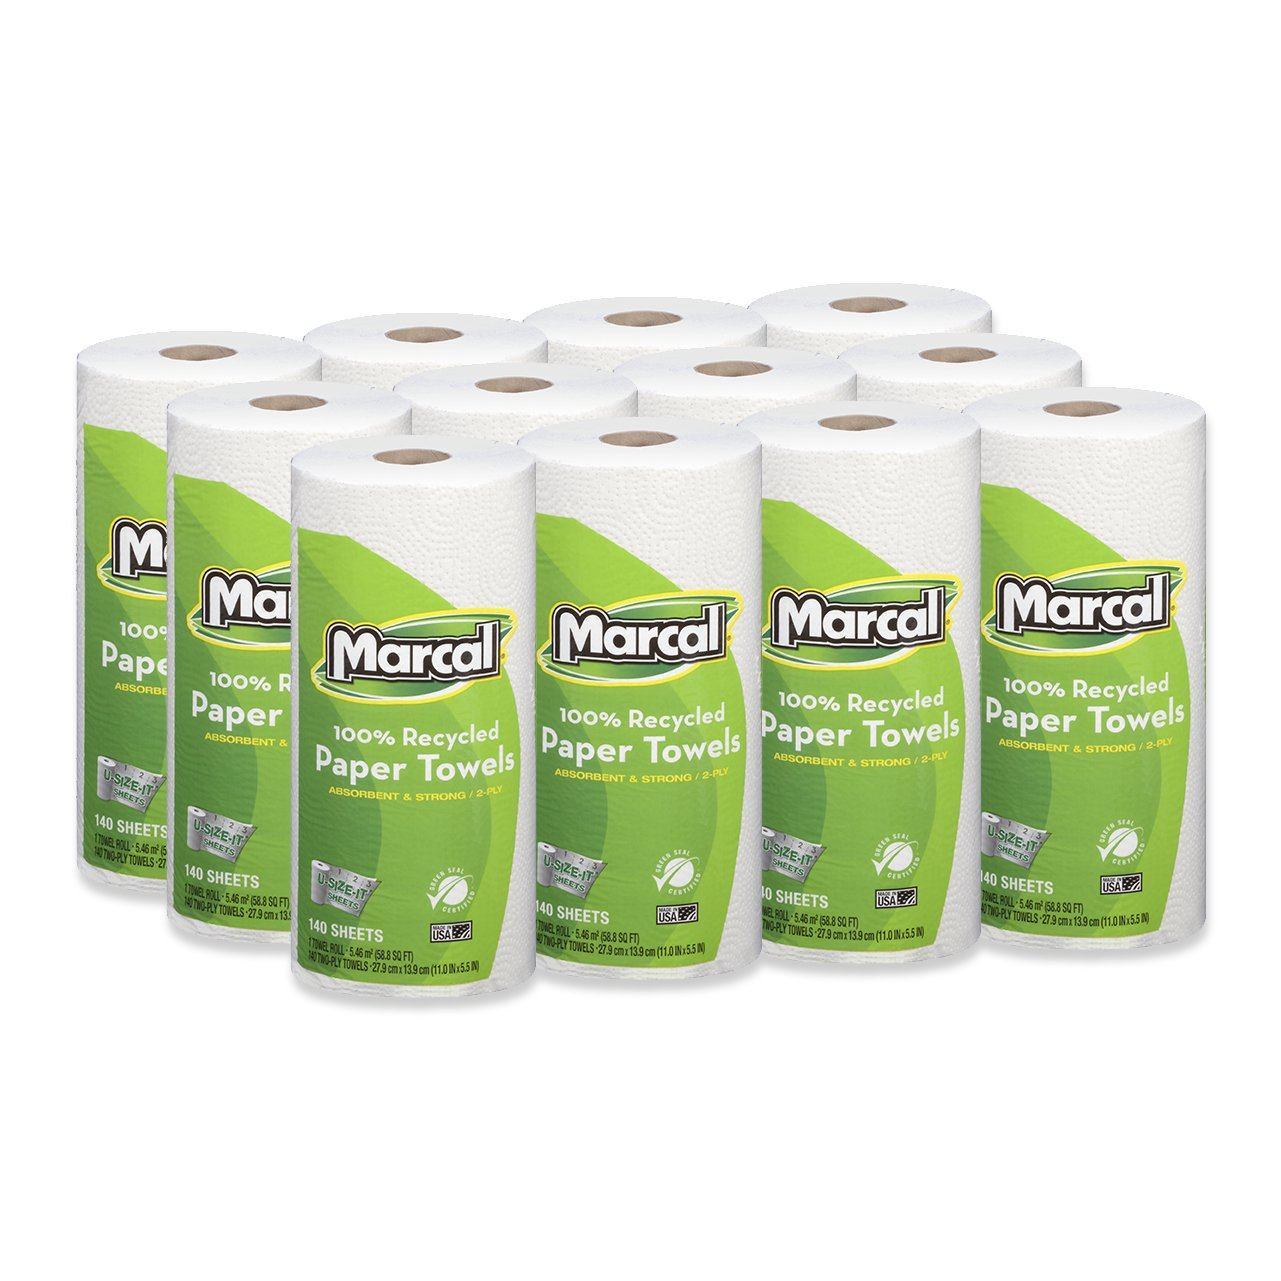 Marcal Paper Towels U-Size-It Sheets 2 Ply 140 Sheets Per Roll 100% Recycled - 12 ''Roll Out'' Rolls Per Case Green Seal Certified Paper Towel Rolls 06183